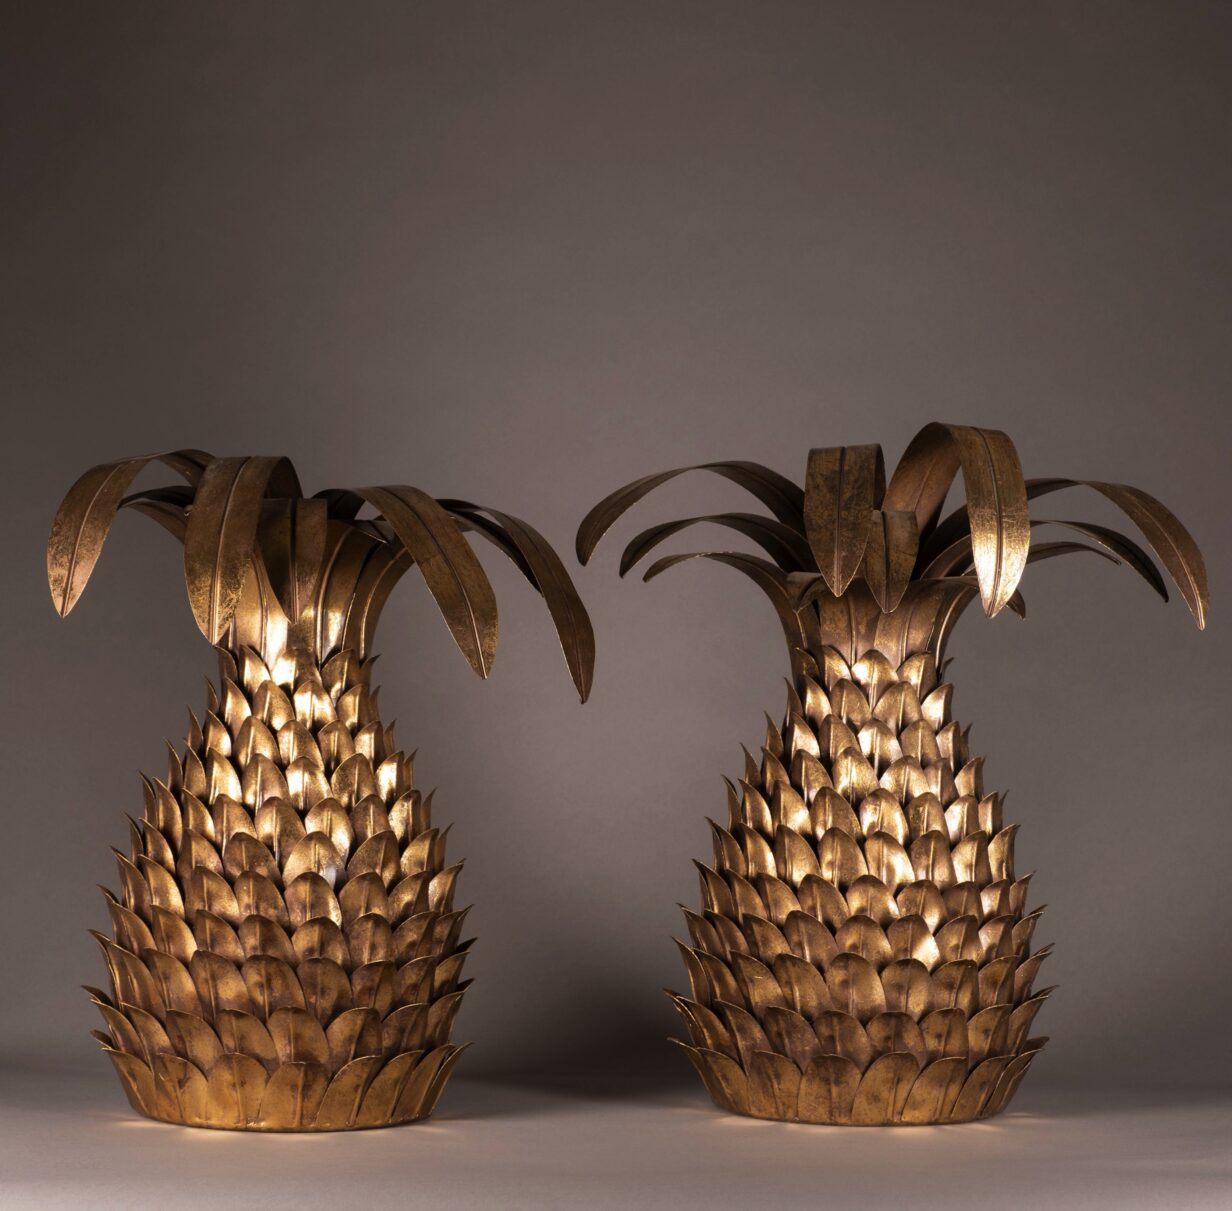 Pair of Gilt Metal Pineapple Wall Lights